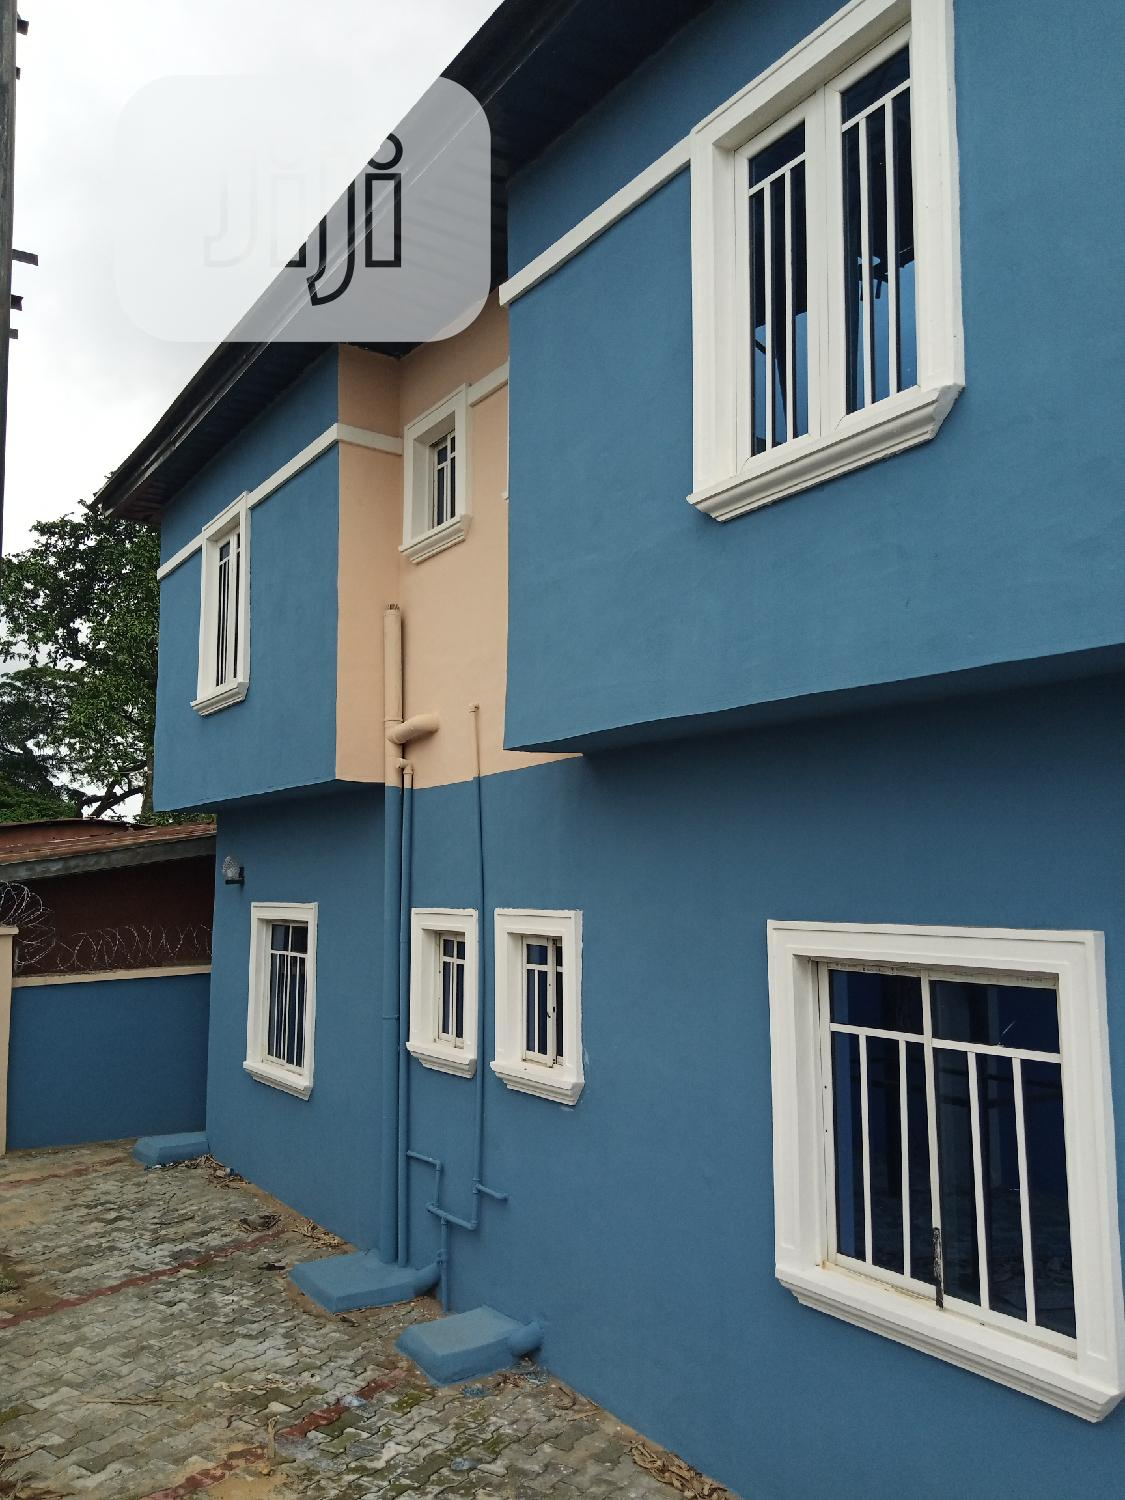 2 Bedroom Flat For Rent At MM Way Benin City | Houses & Apartments For Rent for sale in Benin City, Edo State, Nigeria